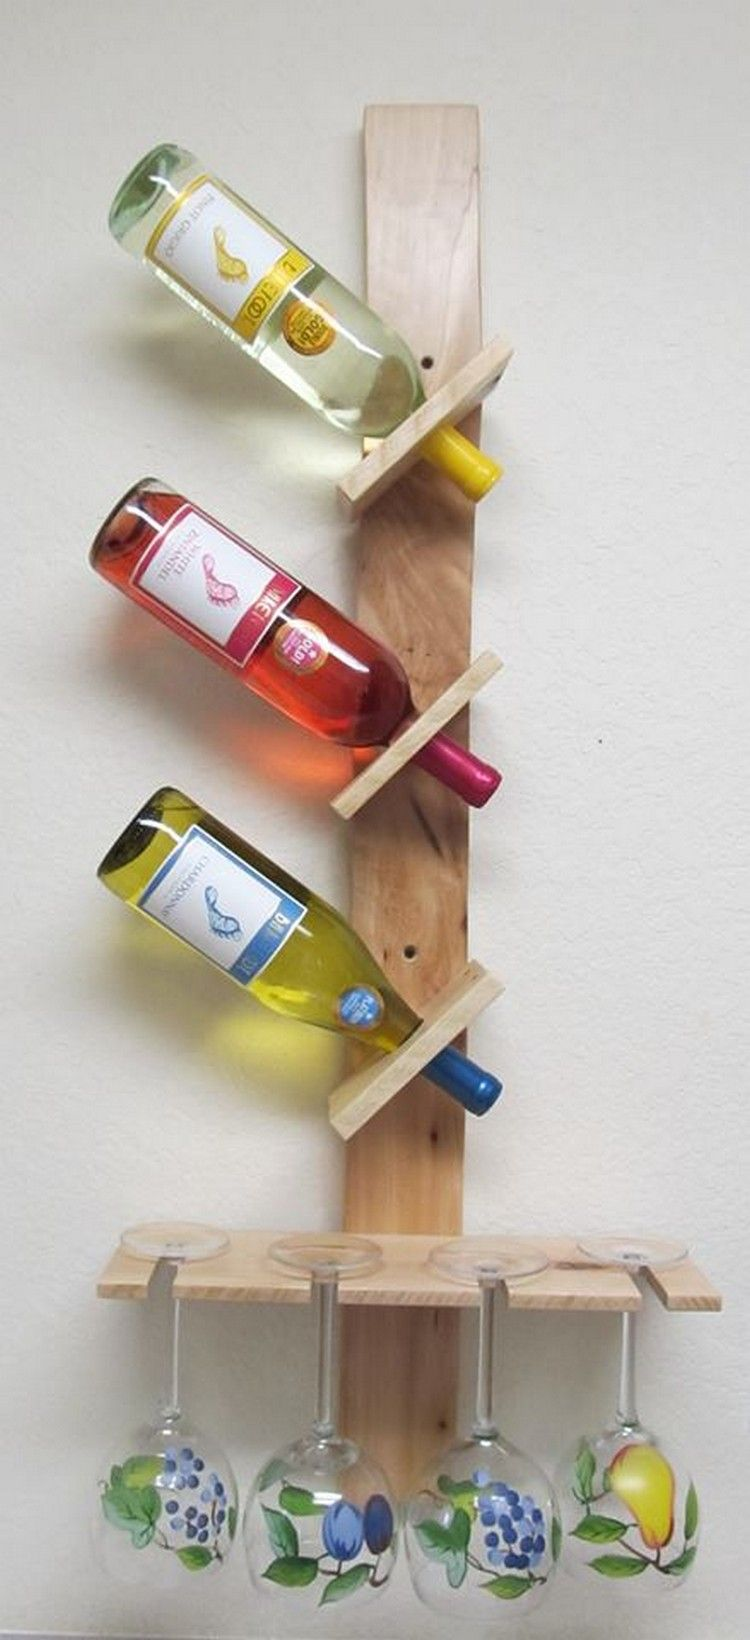 If you are a wine lover and you wish to set and decorate wine bottles then here is a great idea. Take a pallet wood and make holes in it to put bottles I them.